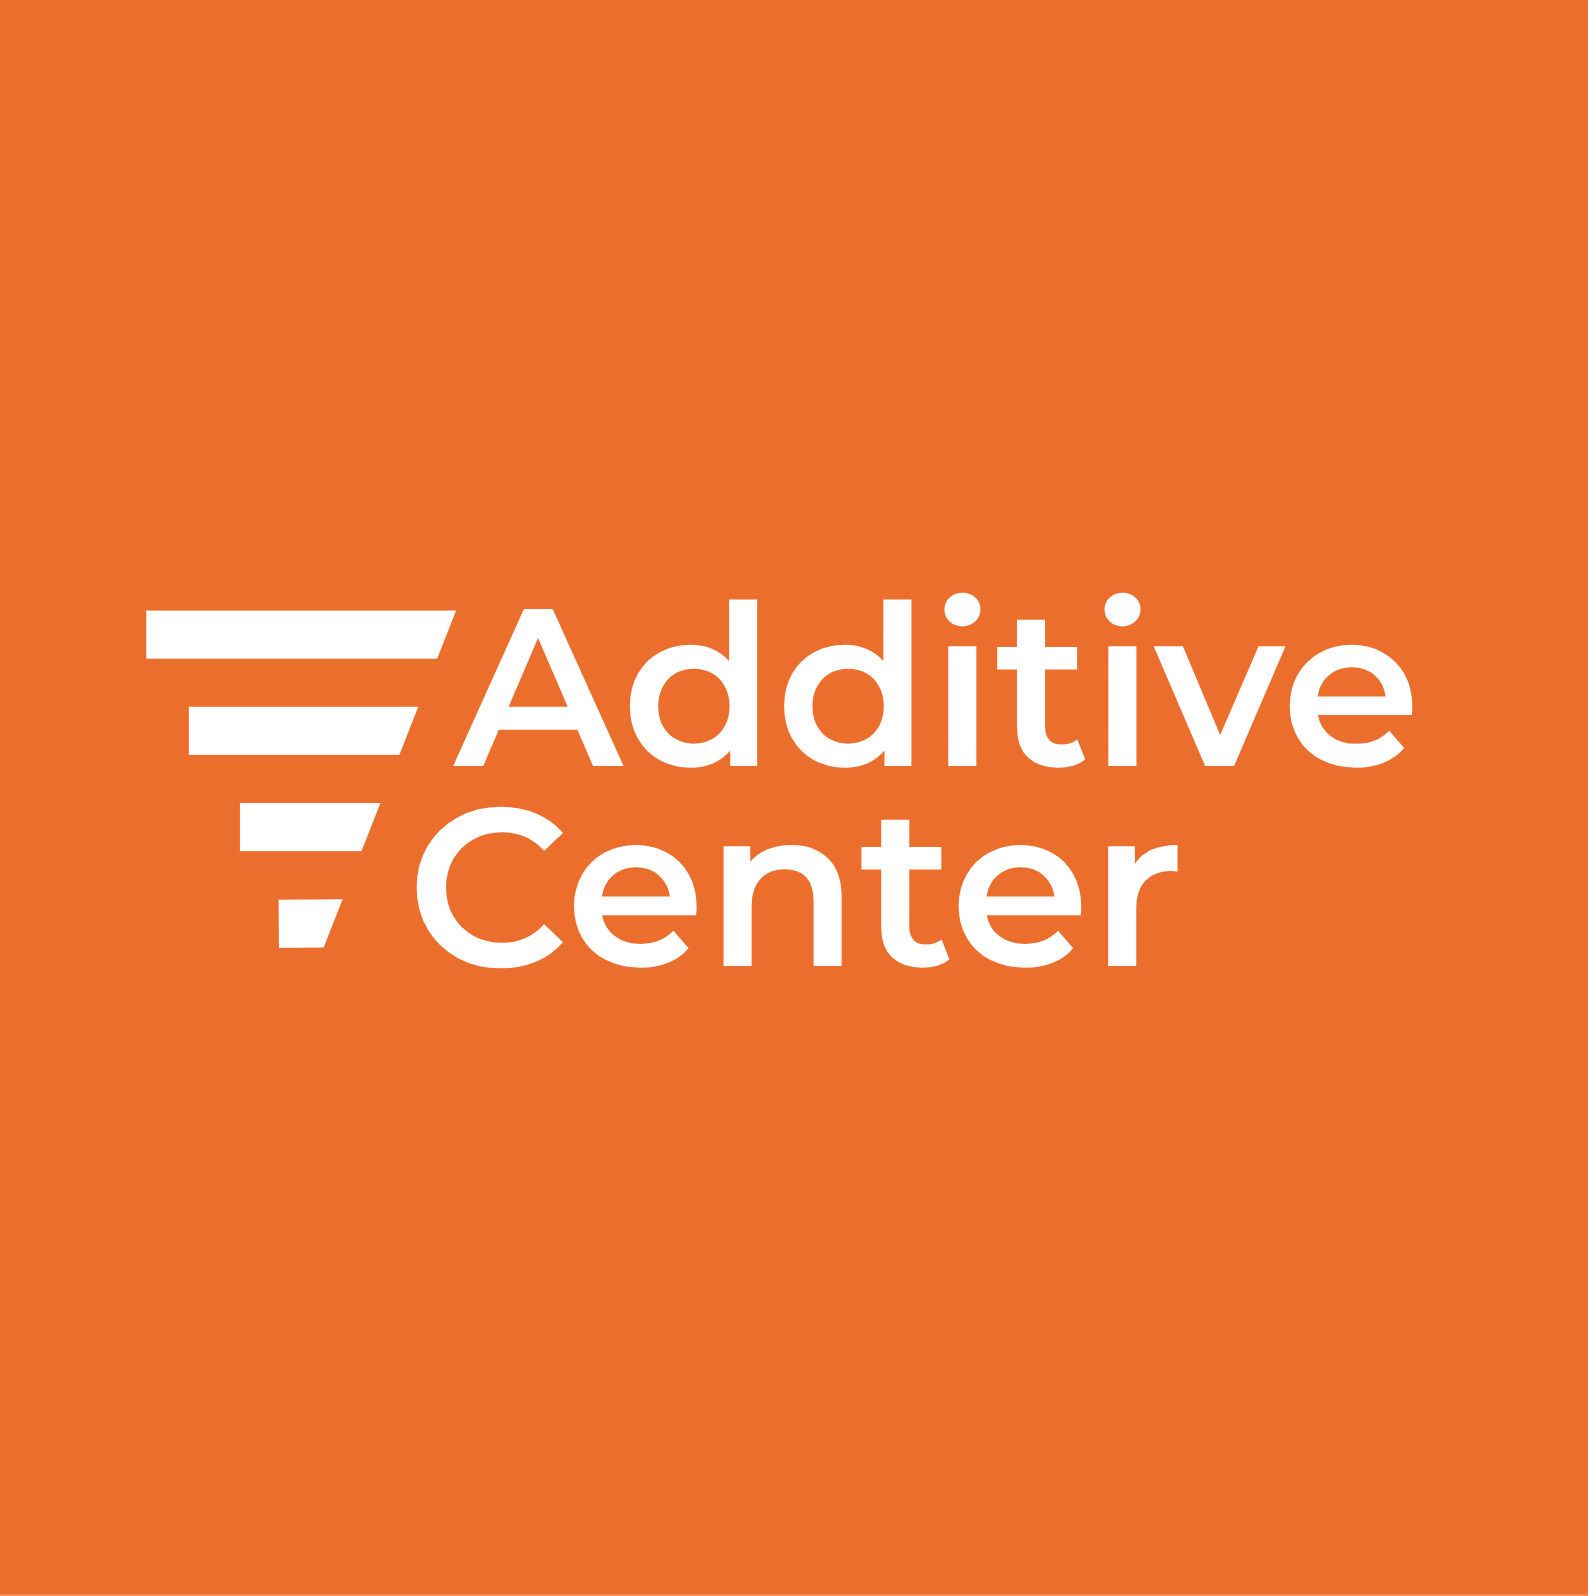 Additive Center logo - Orange - Without text